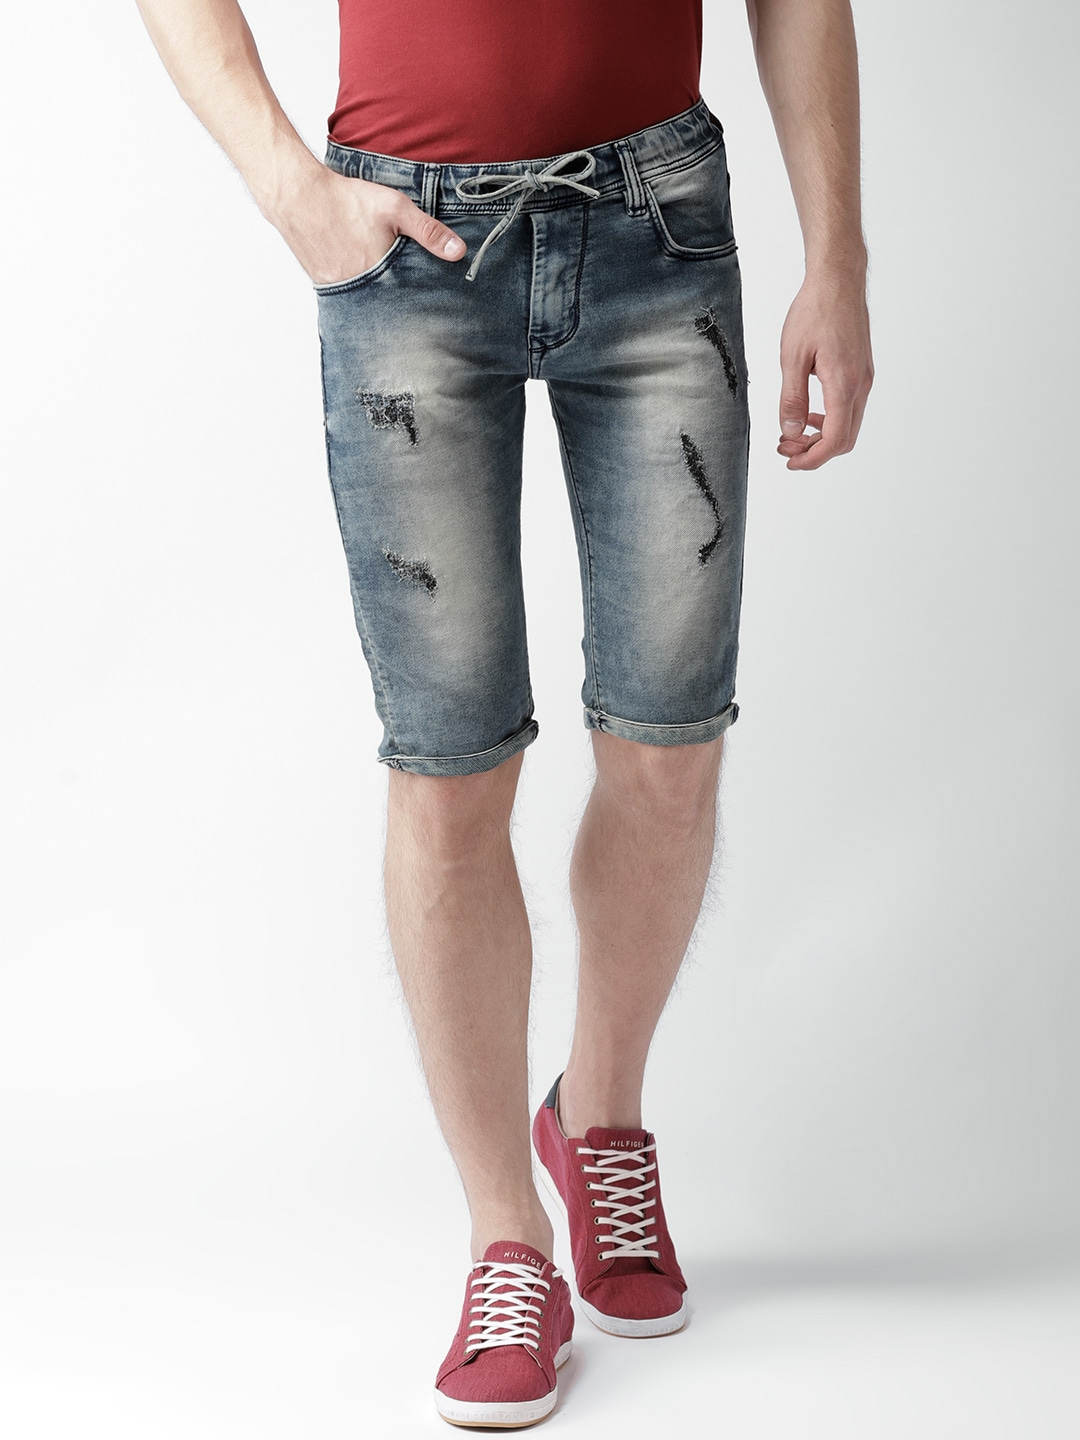 Denim Shorts - Buy Denim Shorts online in India d0de07fda987